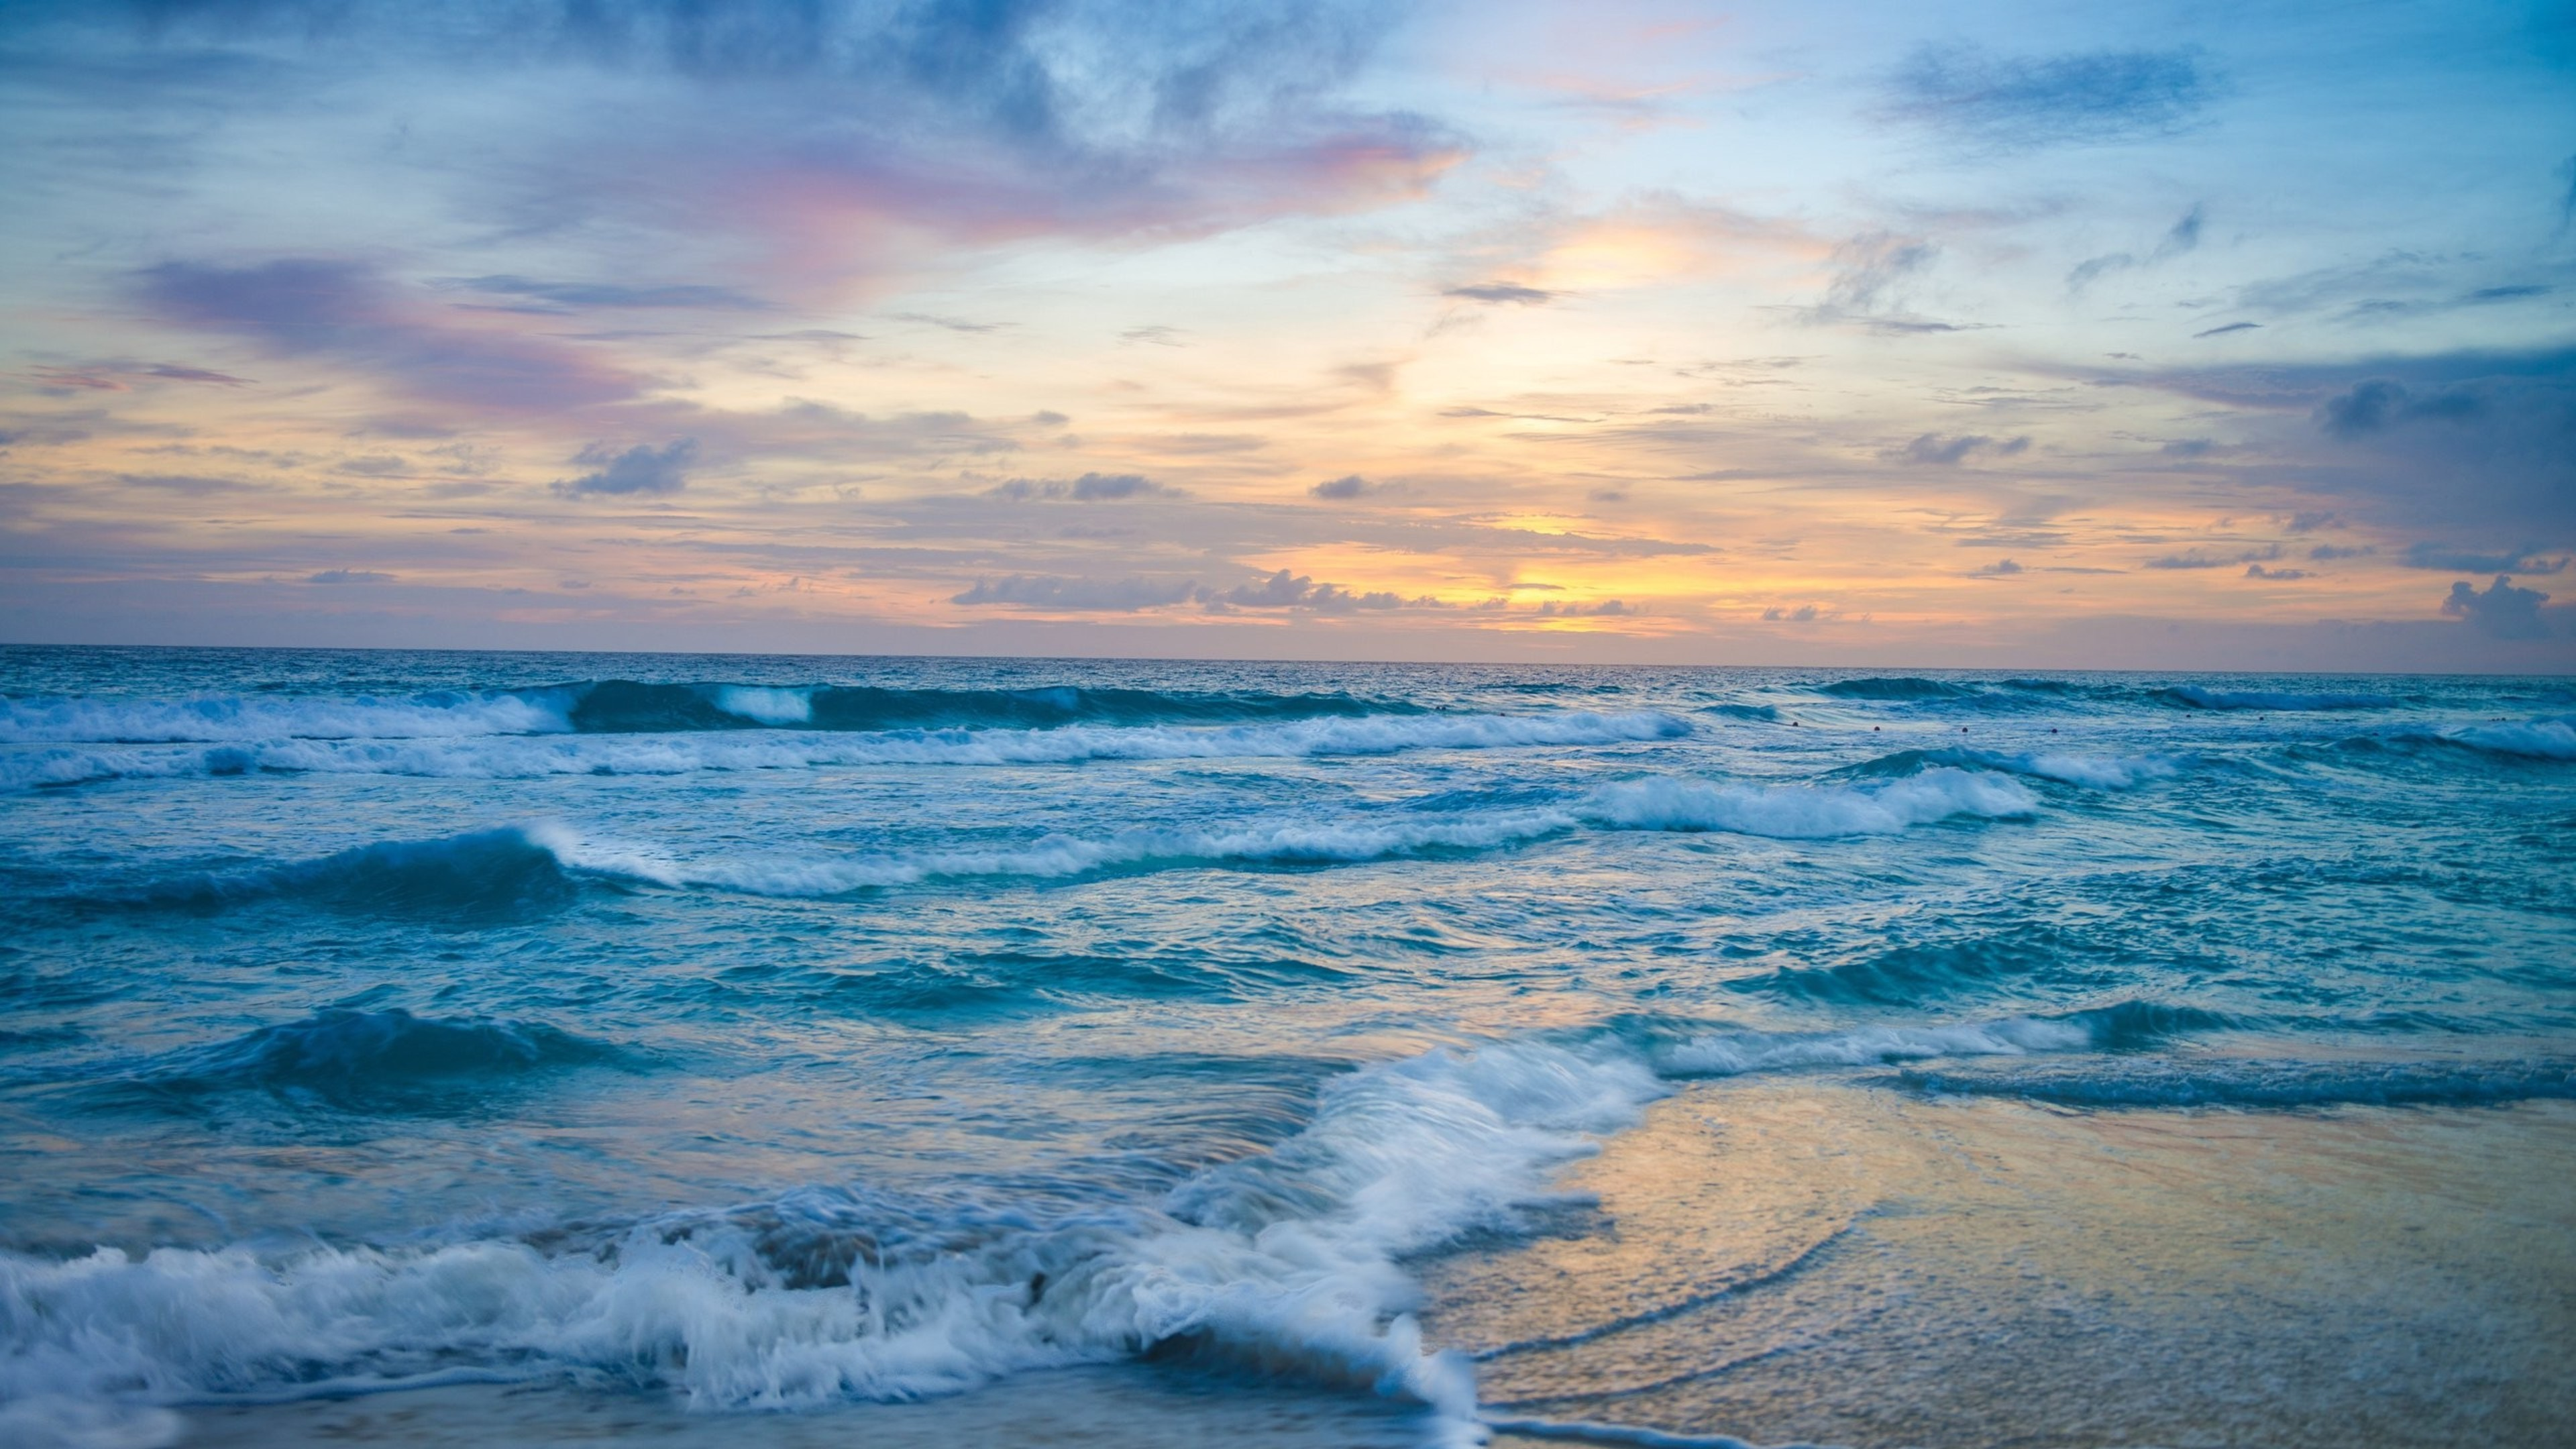 ocean waves at sunset